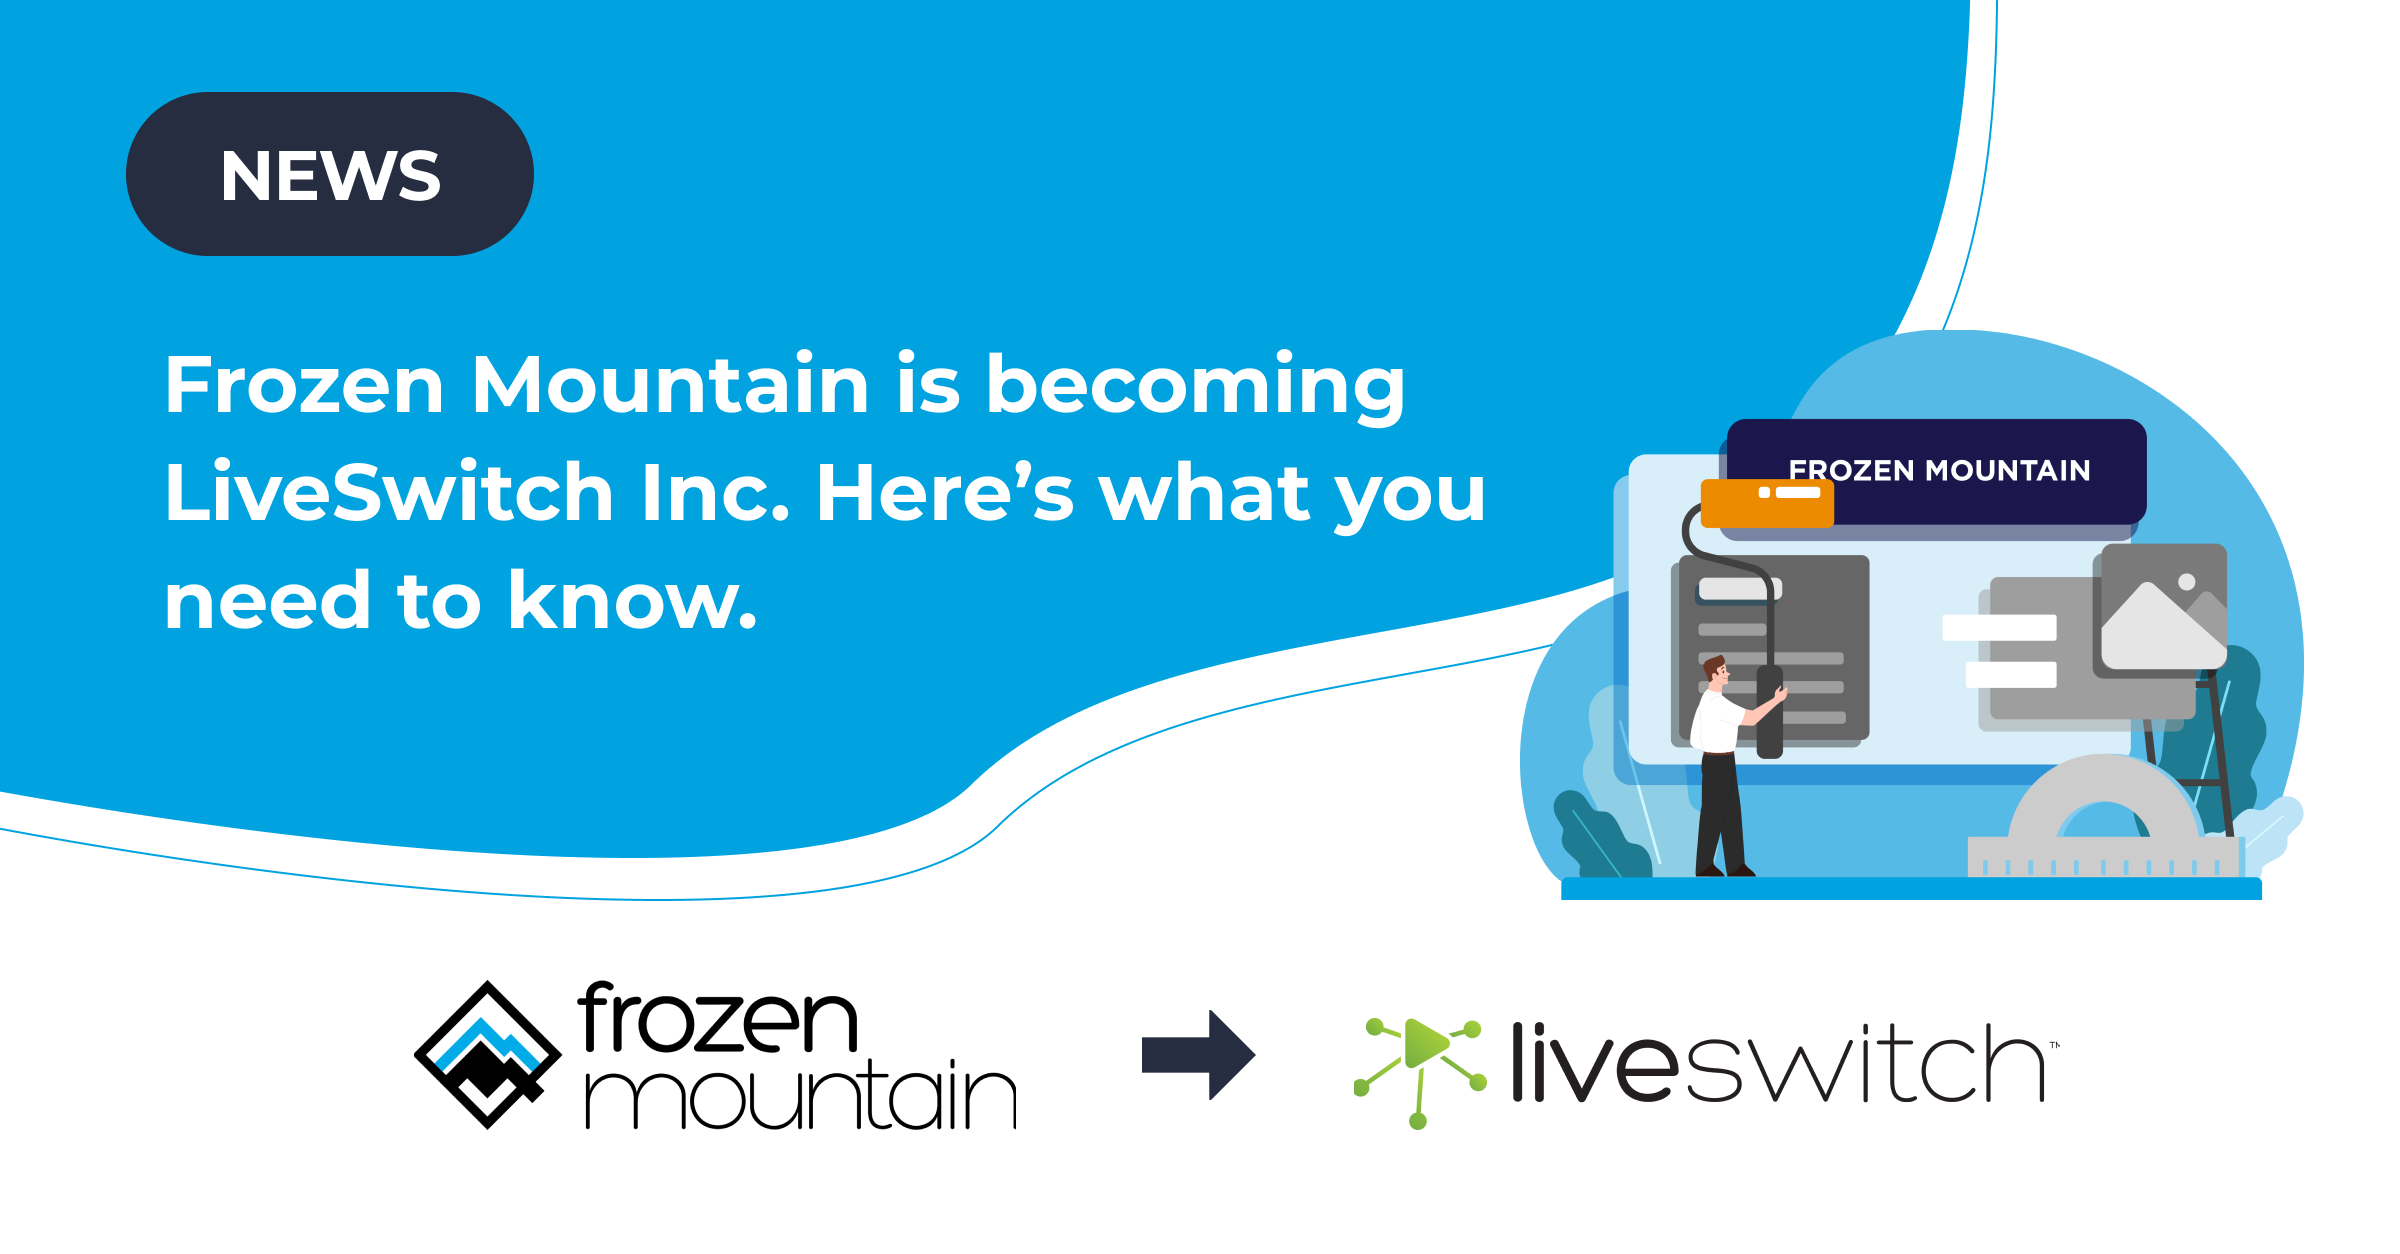 Frozen Mountain is becoming LiveSwitch Inc. Here's what you need to know.